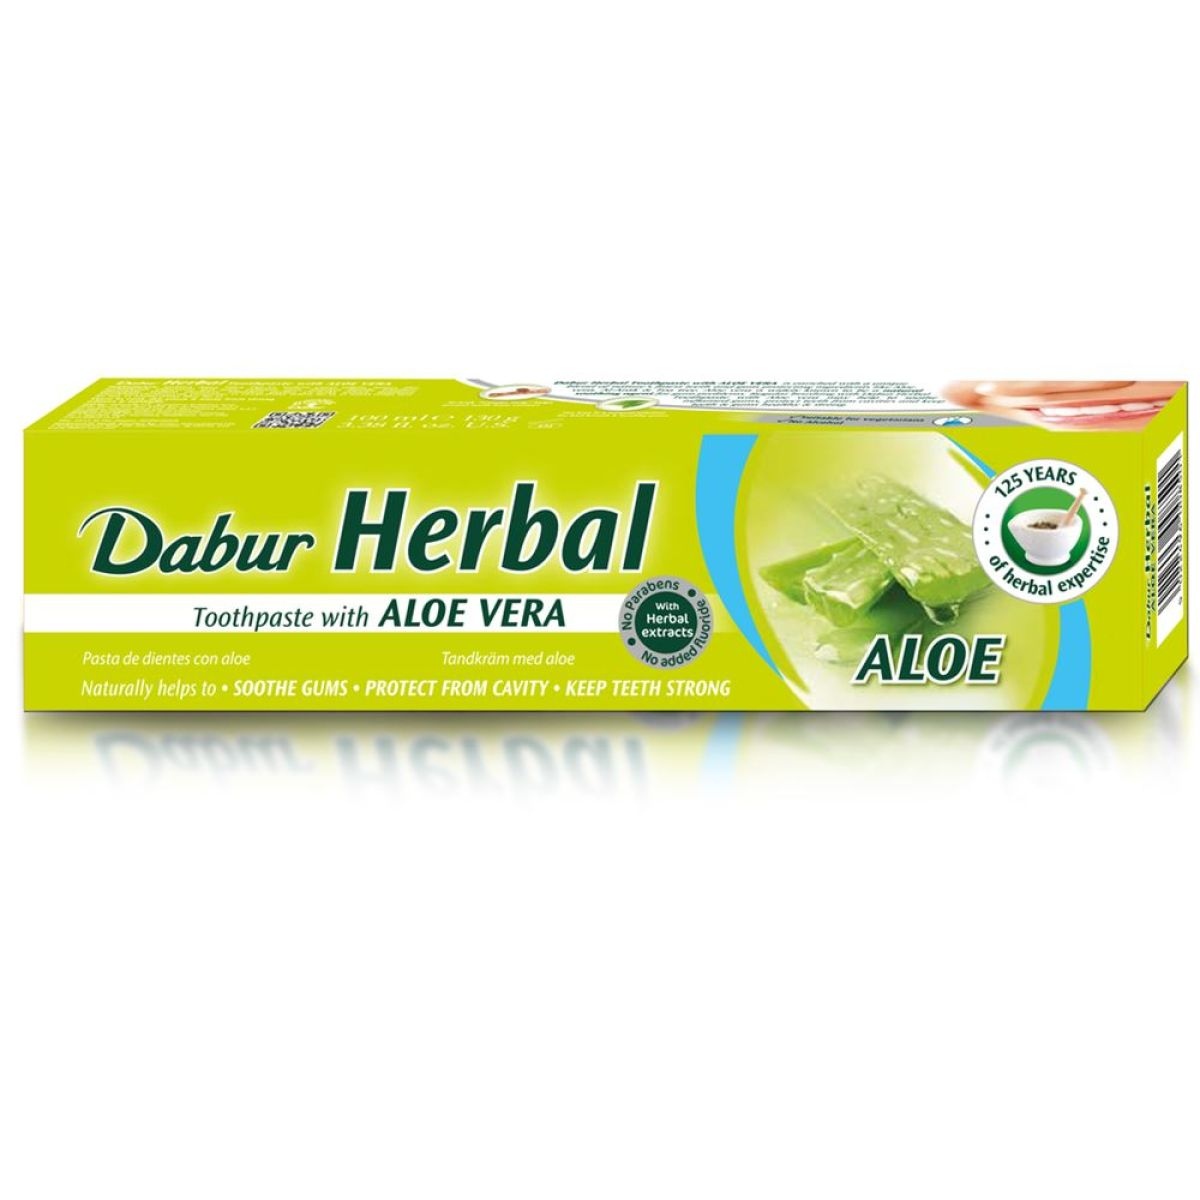 Dabur Herbal Toothpaste Aloe Vera (ayurvedische Zahncreme) 100ml